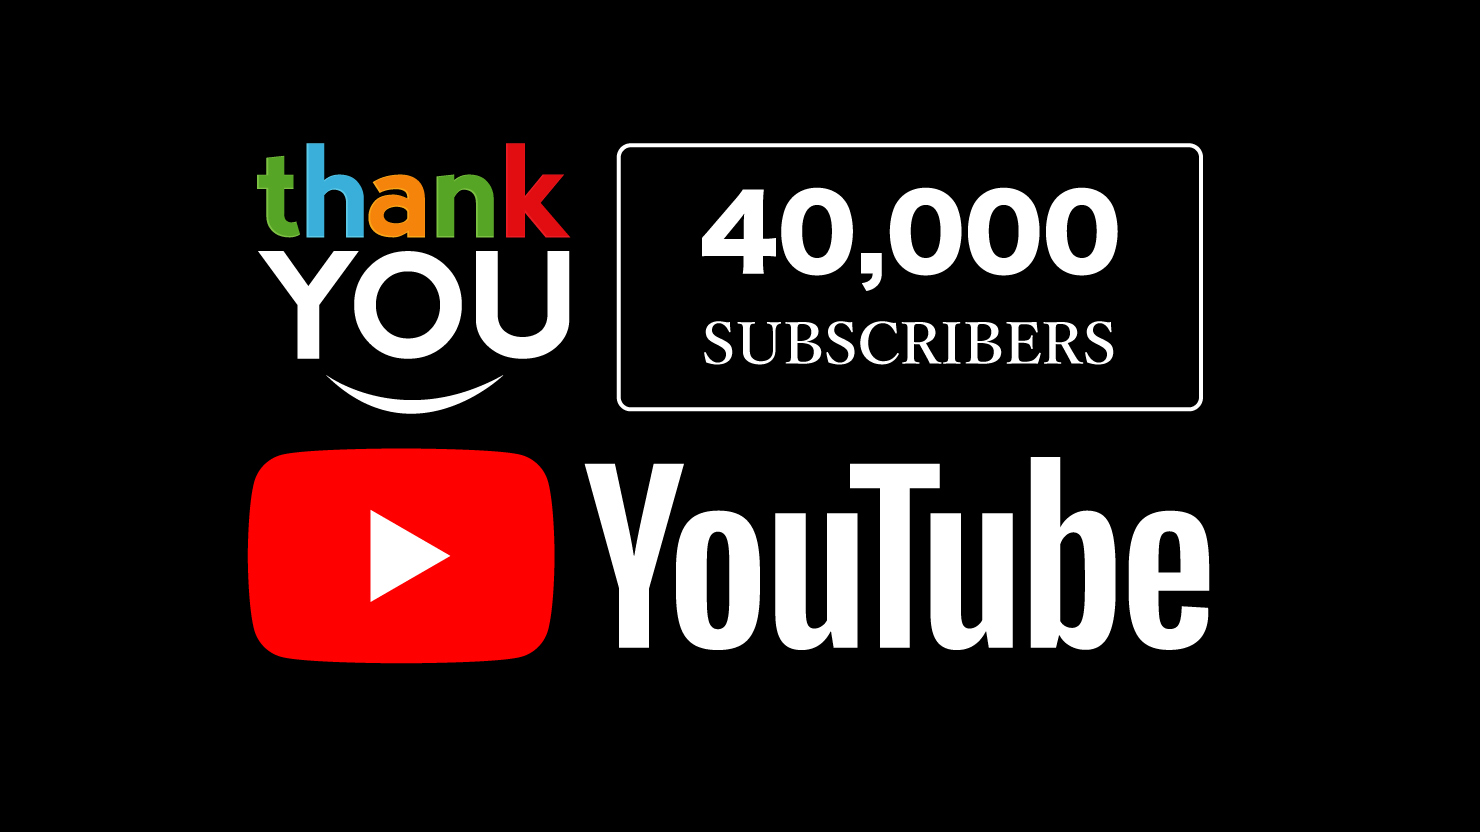 sleepfreaks-youtube_subscribers-40000